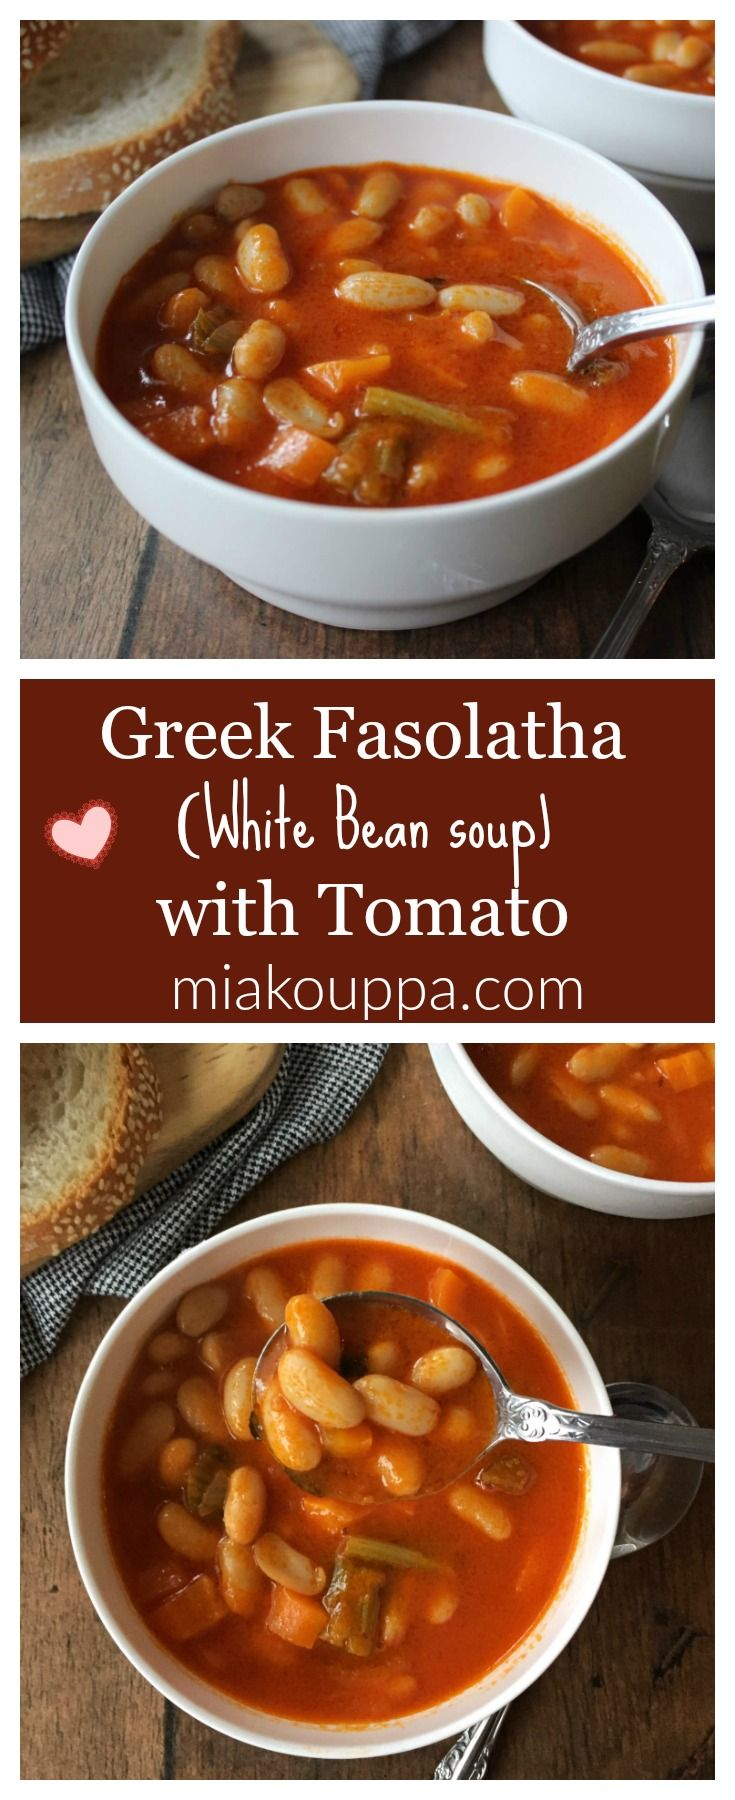 Fasolatha with tomato (Φασολάδα με ντομάτα).  Try this Greek soup, loaded with flavours.  So easy and delicious. #fasolatha #beansoup #greek #greekrecipes